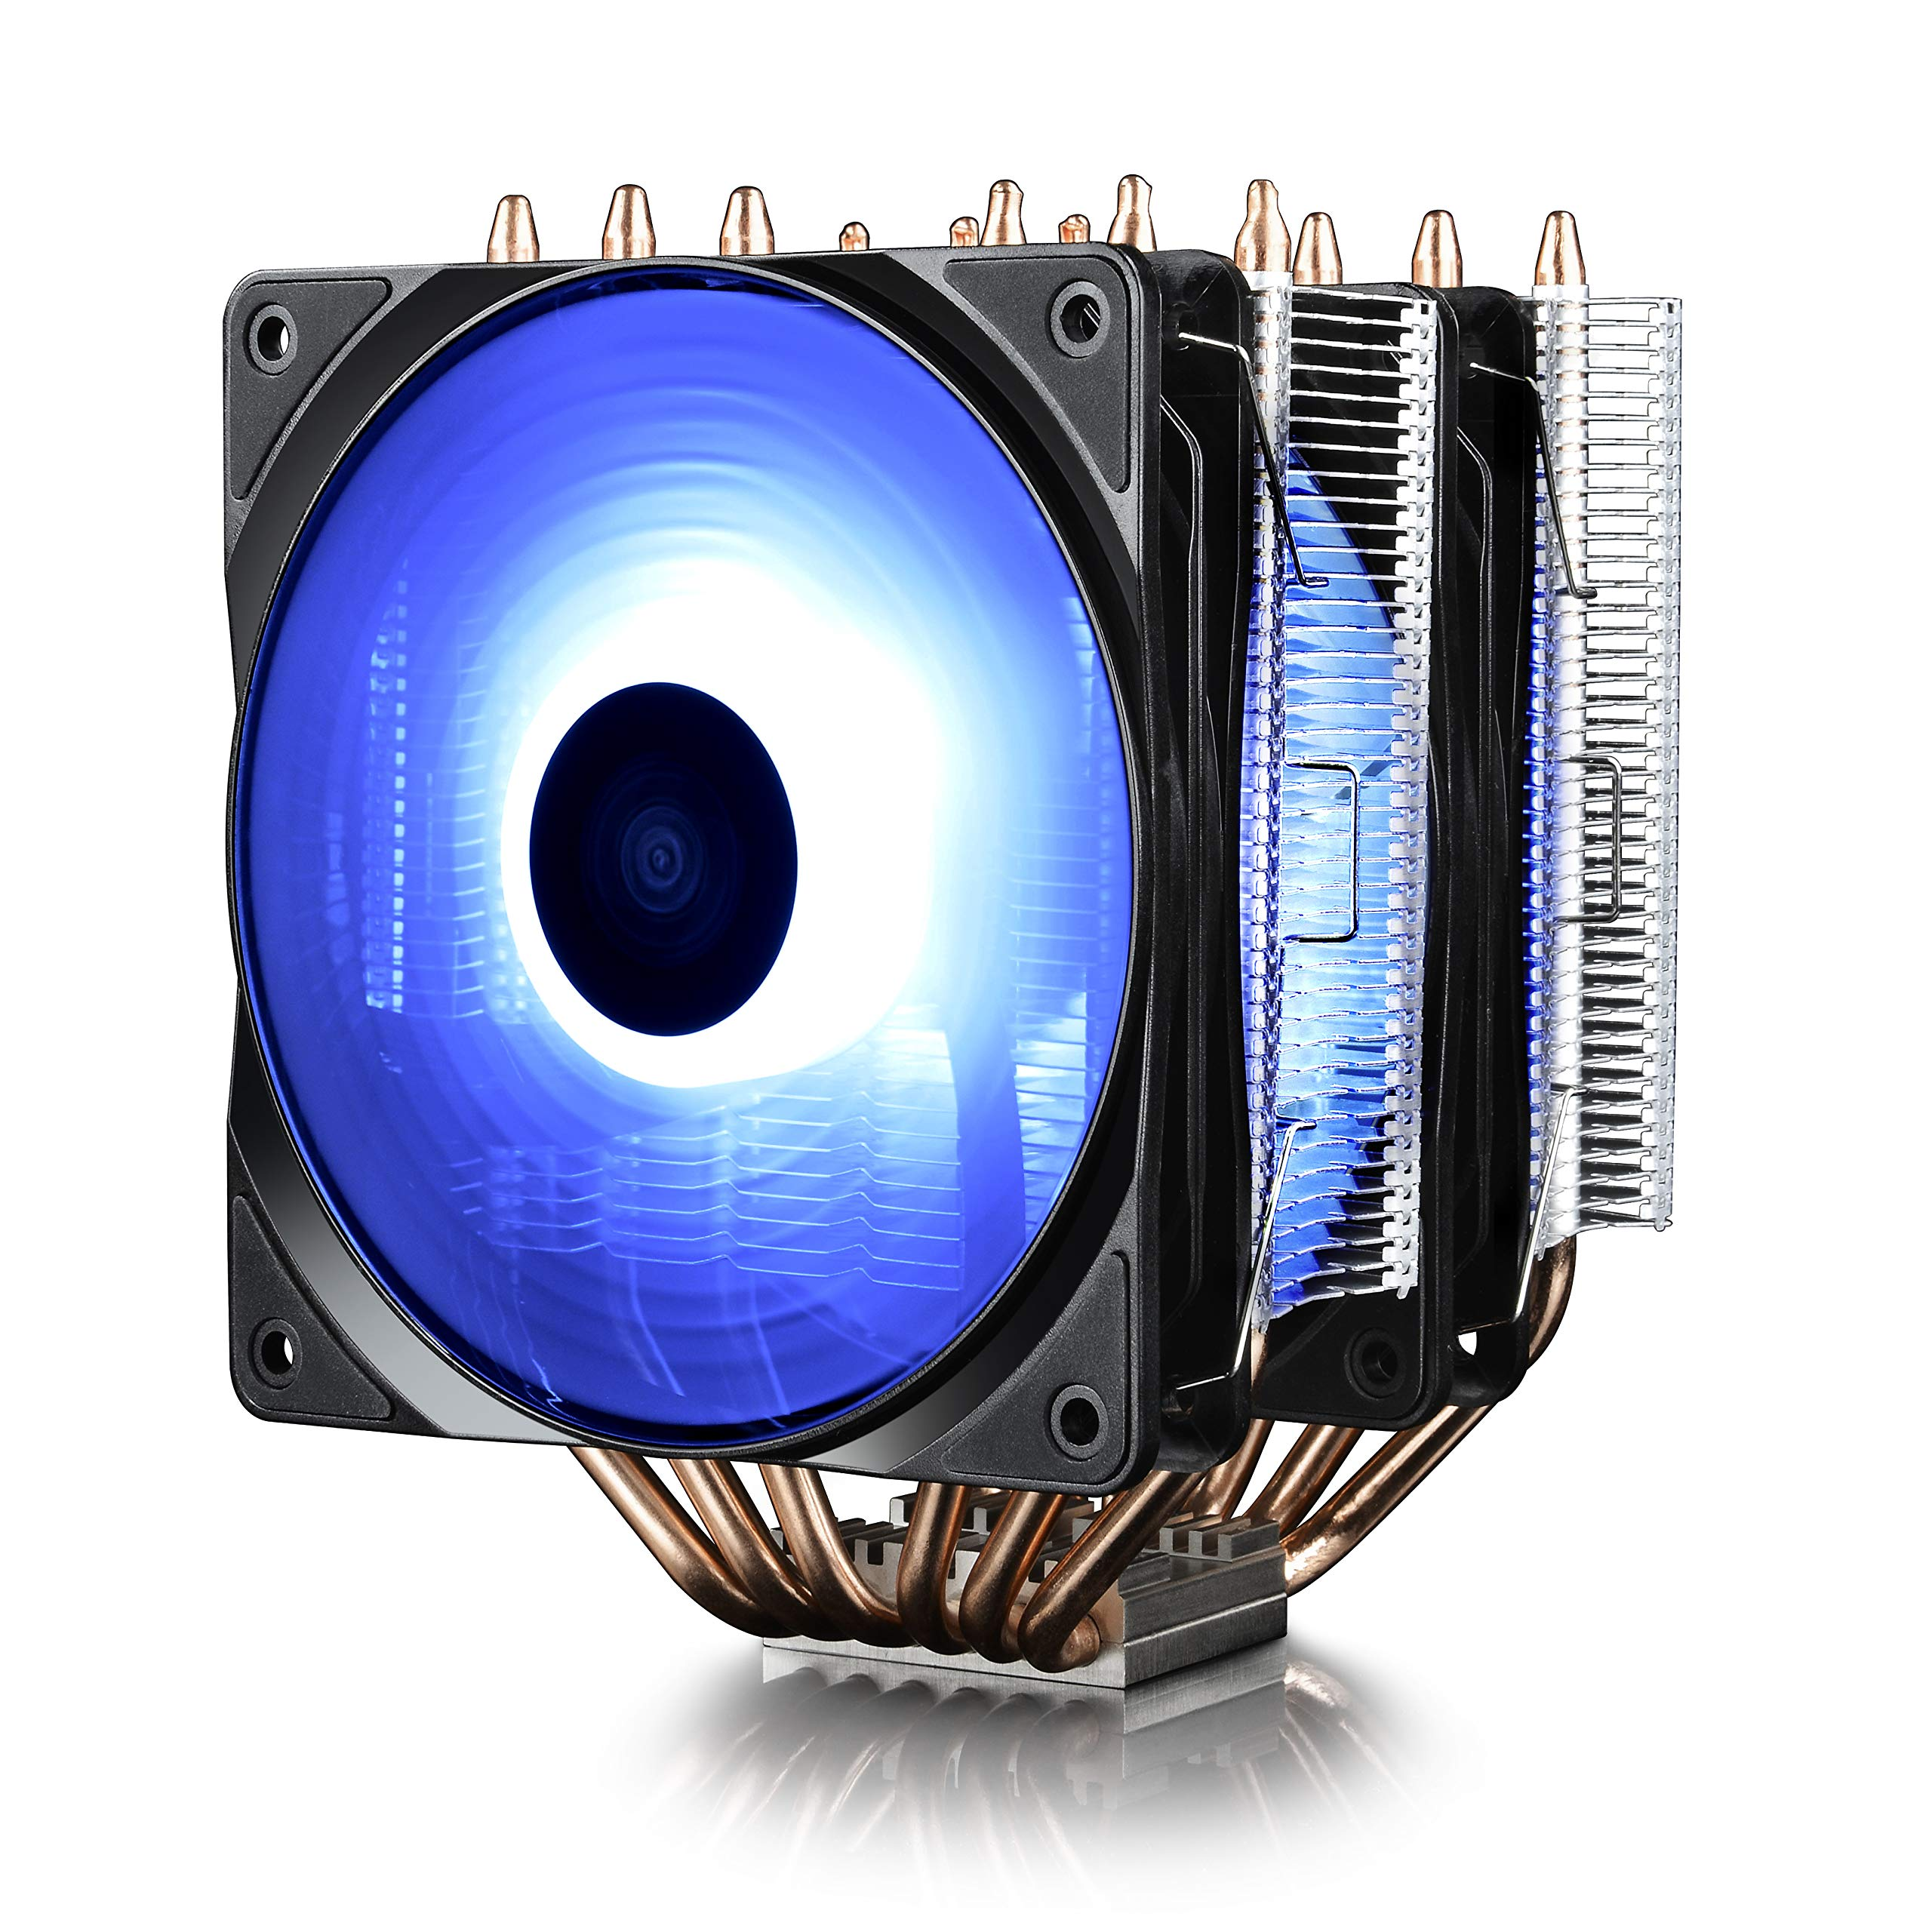 DEEPCOOL Neptwin RGB CPU Cooler 6 Heatpipes Twin-Tower Heatsinks Dual 120mm PWM RGB Fans Motherboard Control and Wired Controller Supported